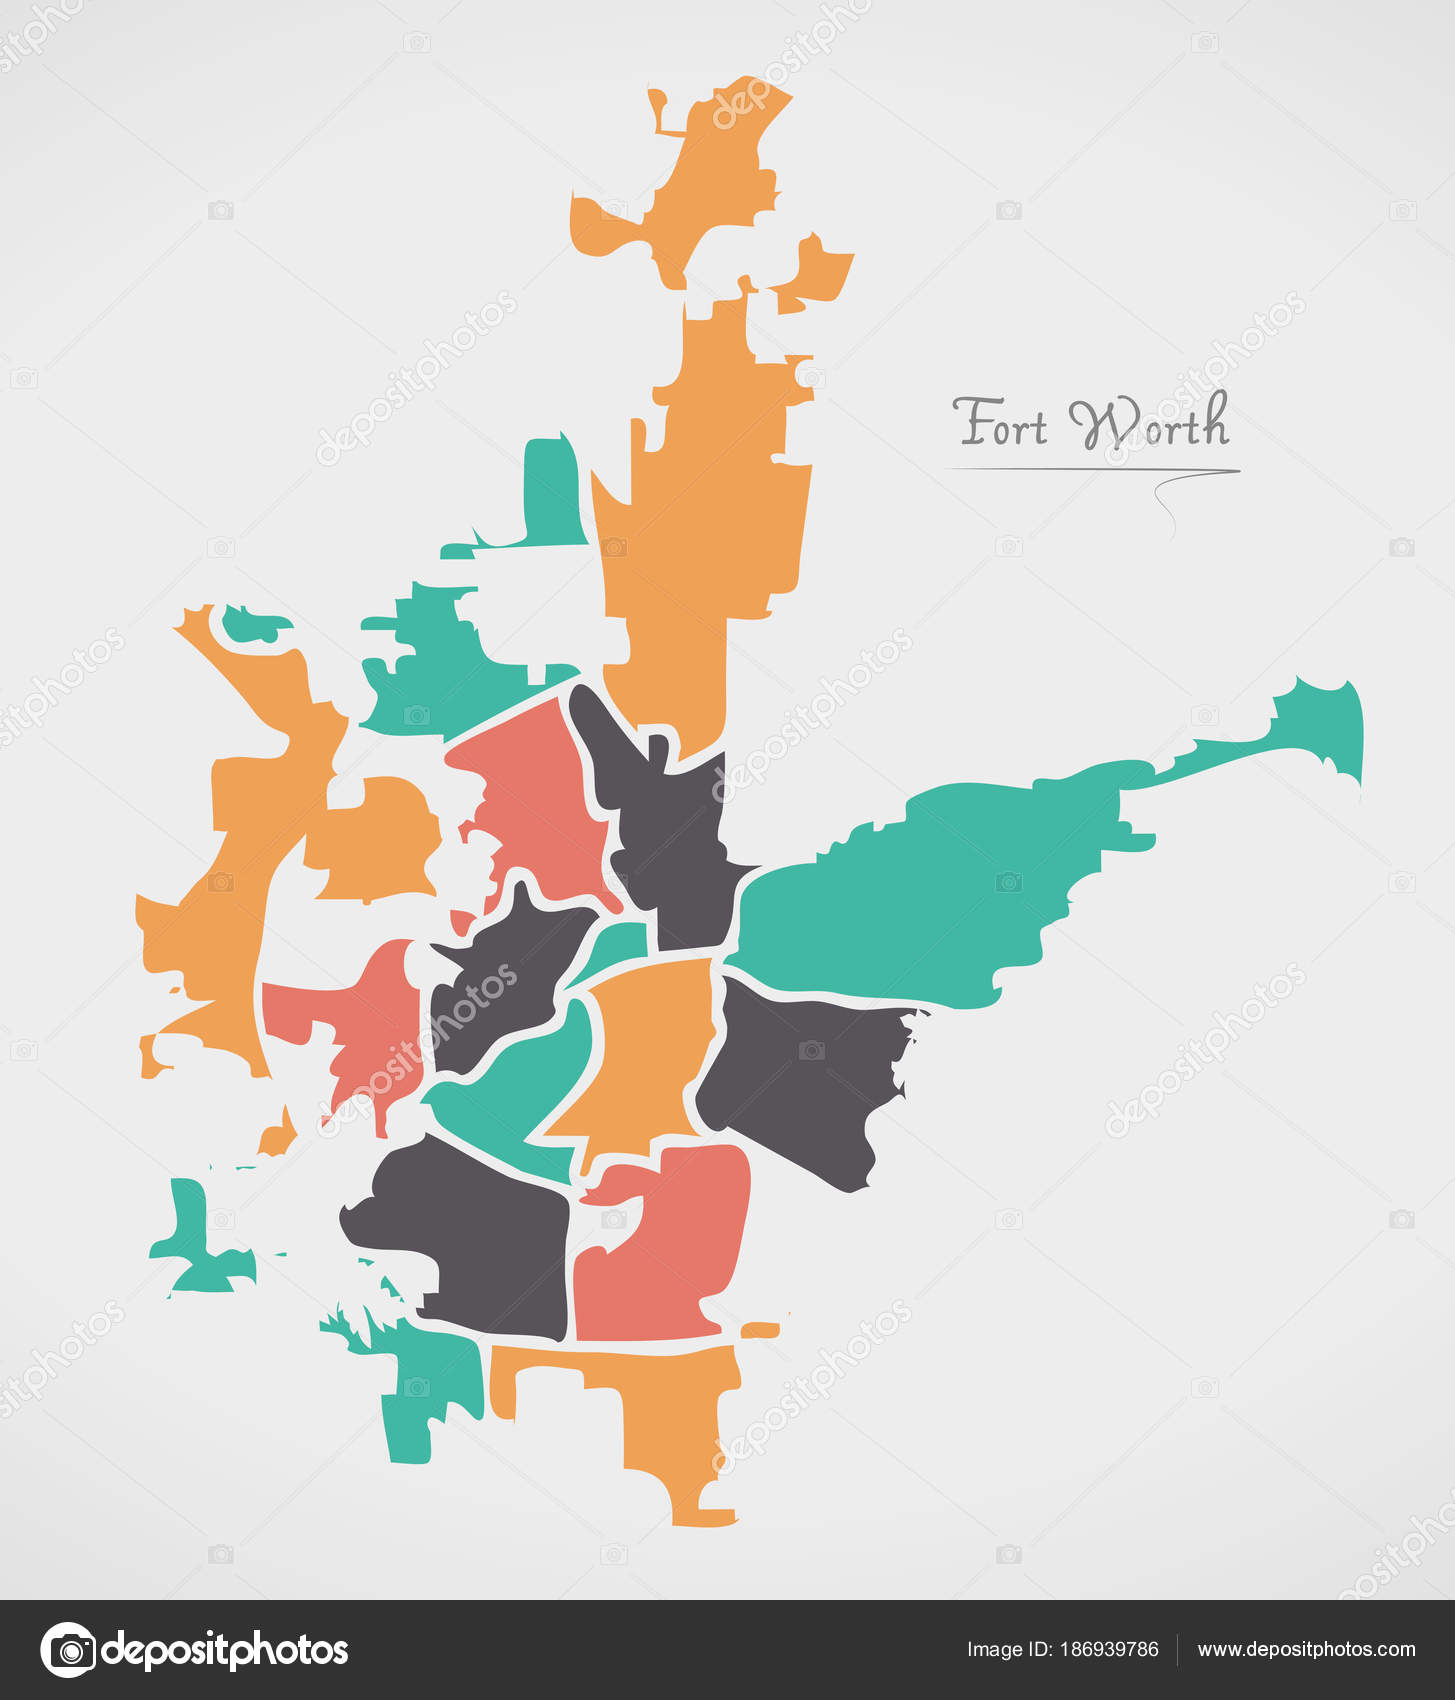 Fort Worth Texas Map with neighborhoods and modern round shapes ...